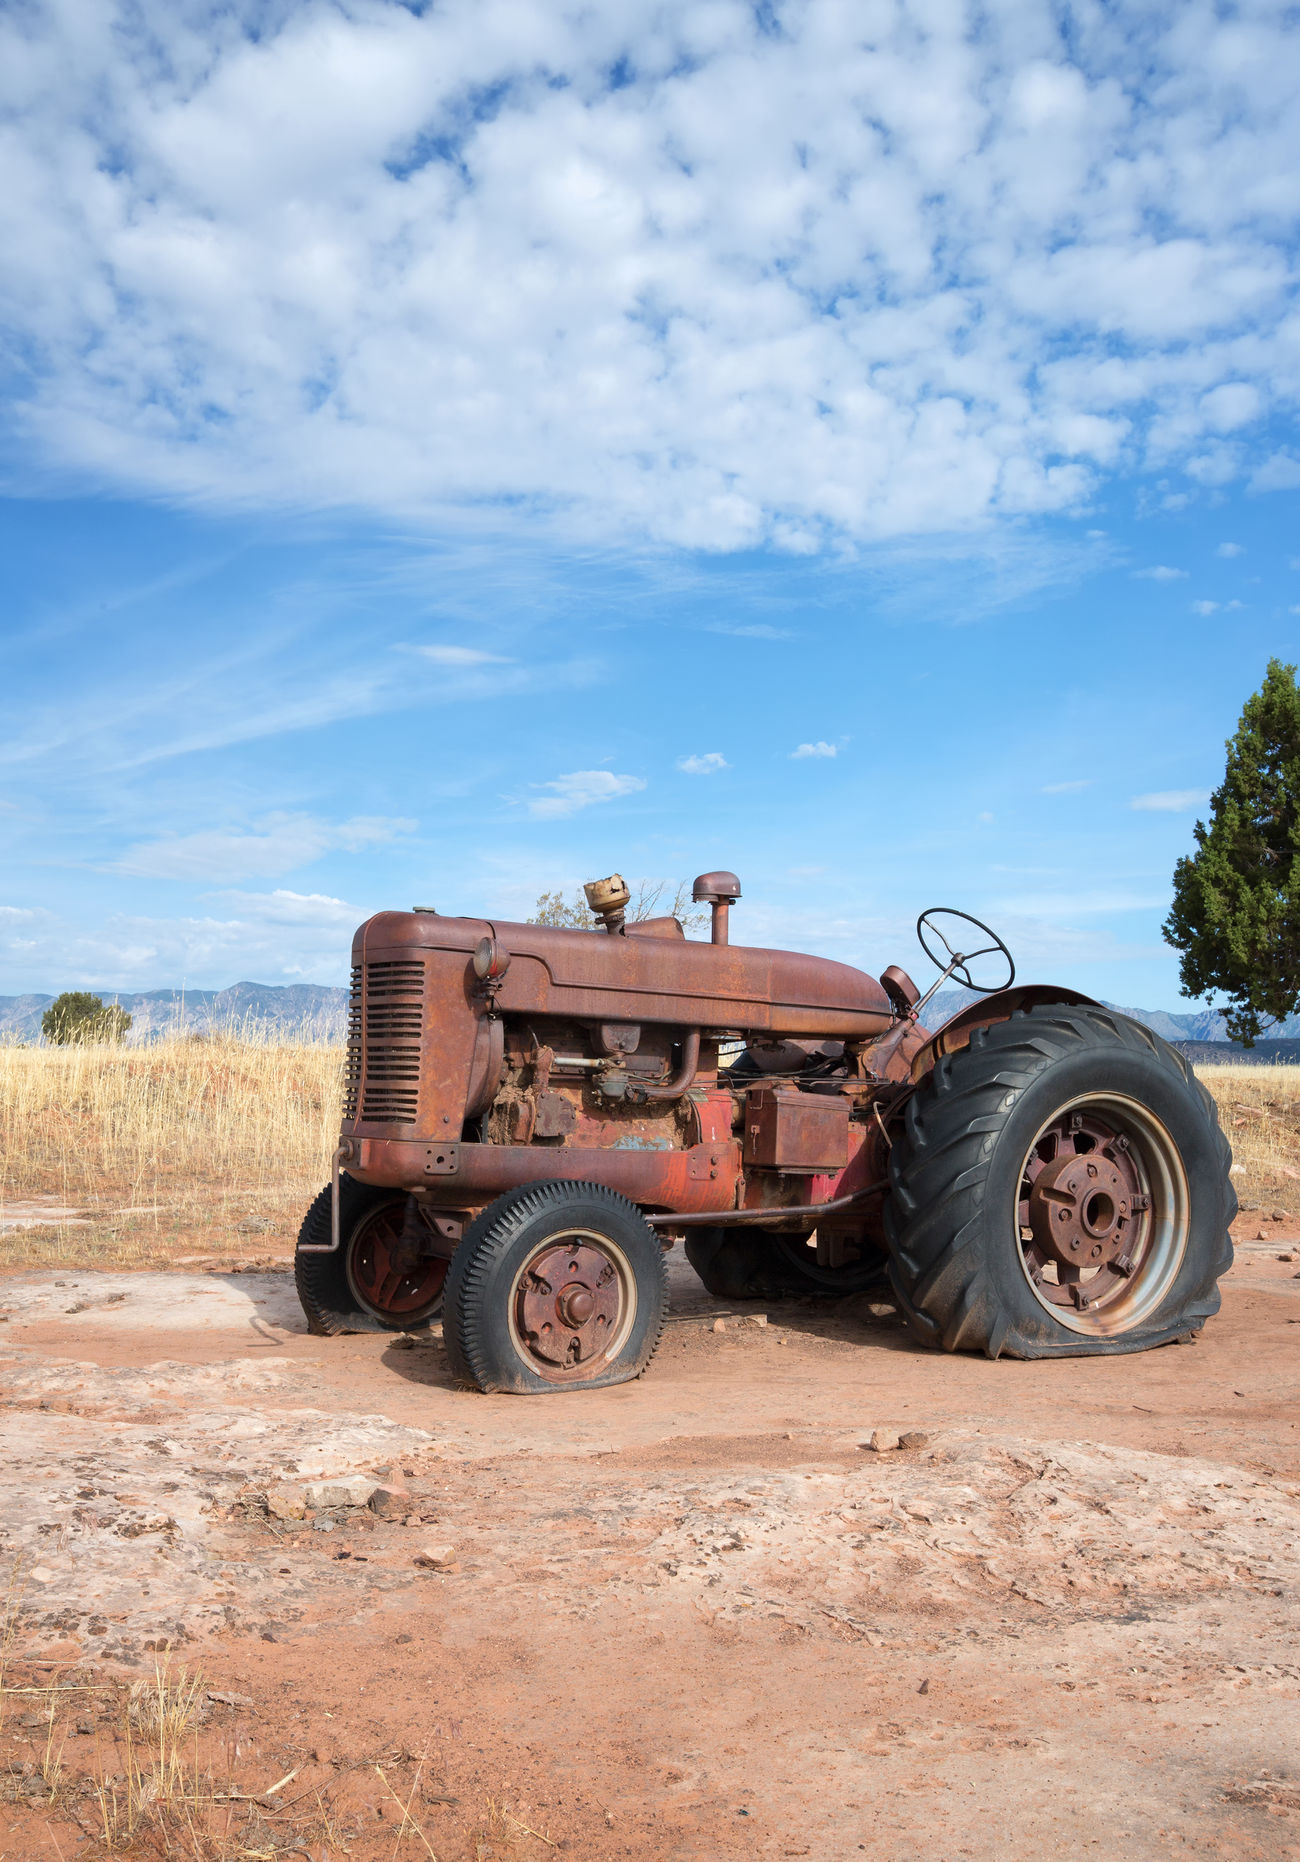 Antique Tractor Tractor Love Red Tractor Old But Awesome Trucks Farming Vehicles Rural Scenes Rural America Farming Bestoftheday Eye4photography  I Hope My Pictures Touch Your Hart Canon 5d Mark Lll Tractors Among Us Tractorlife Transportation EyeEm Best Shots Canon Western Utah Fine Art